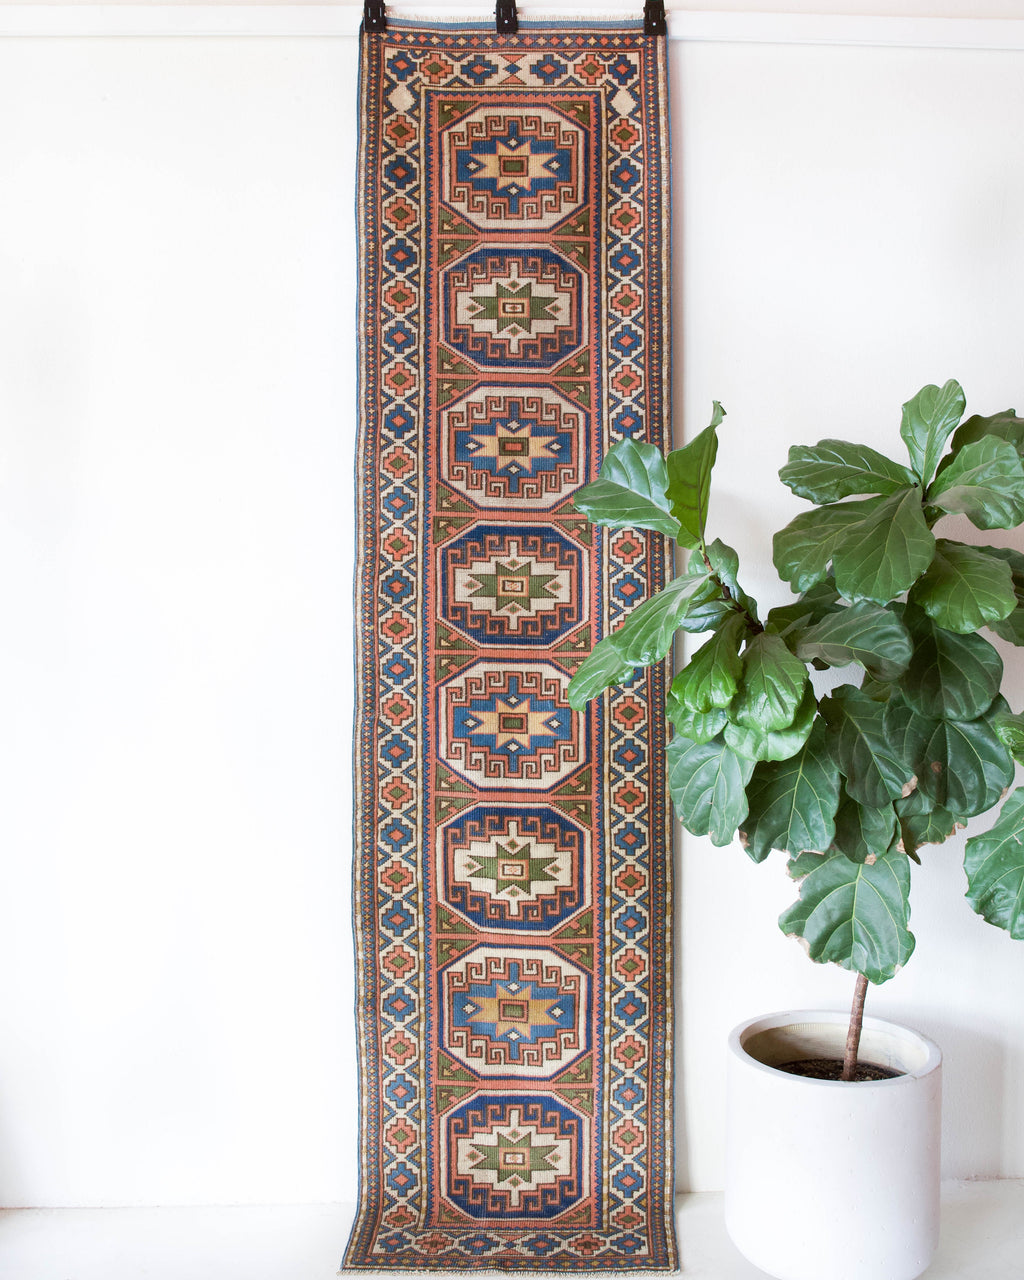 Vintage Turkish runner rug in living room setting, old rug, antique rug, pastel colors, faded colors, Turkish rug, vintage rug, soft rug, Portland, Oregon, rug store, rug shop, local shop